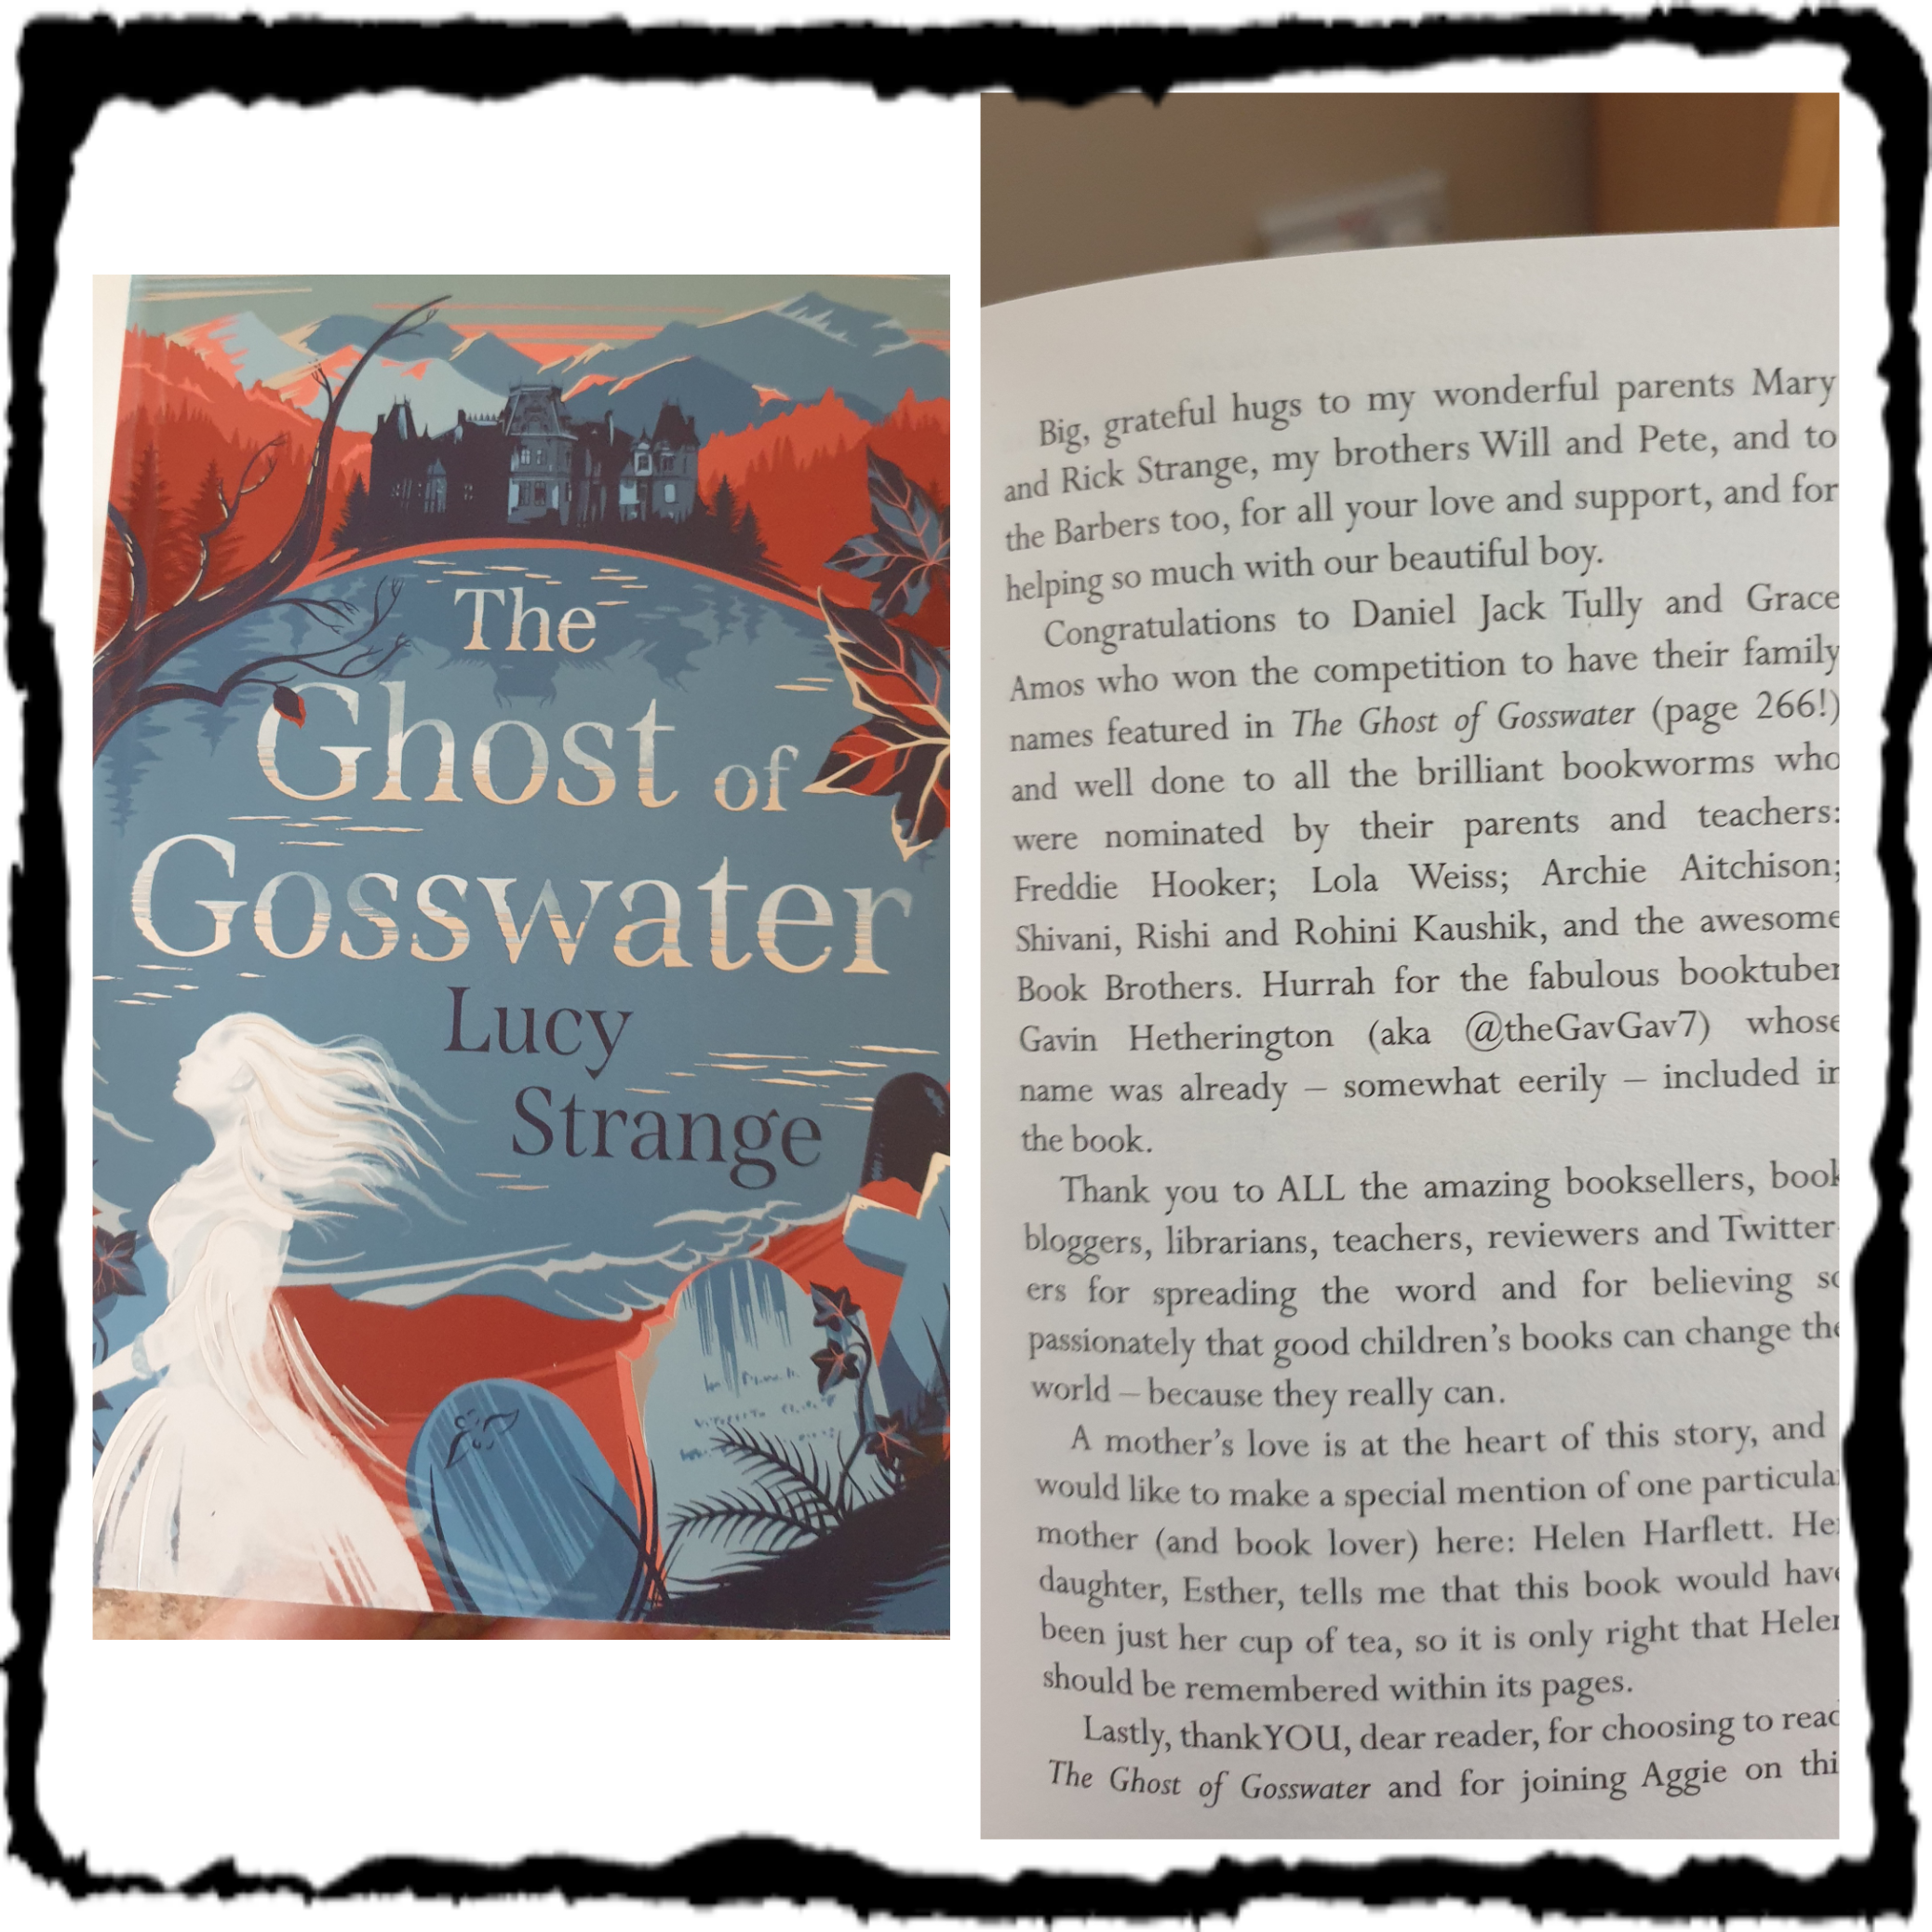 The Ghost of Gosswater Book Cover